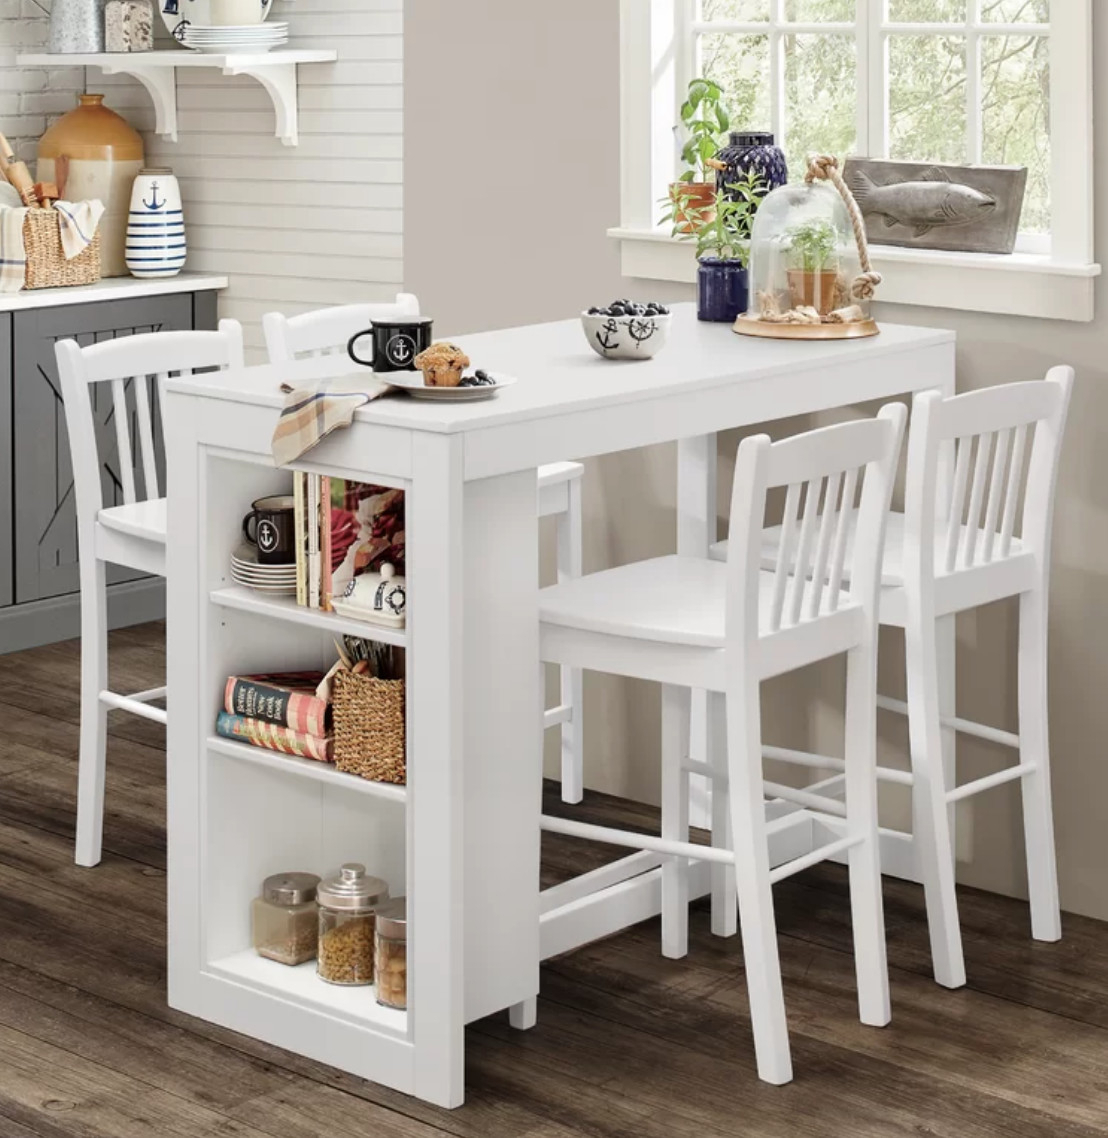 Dining Tables For Small Spaces – Small Spaces – Lonny Inside Most Recently Released Taulbee 5 Piece Dining Sets (View 12 of 20)